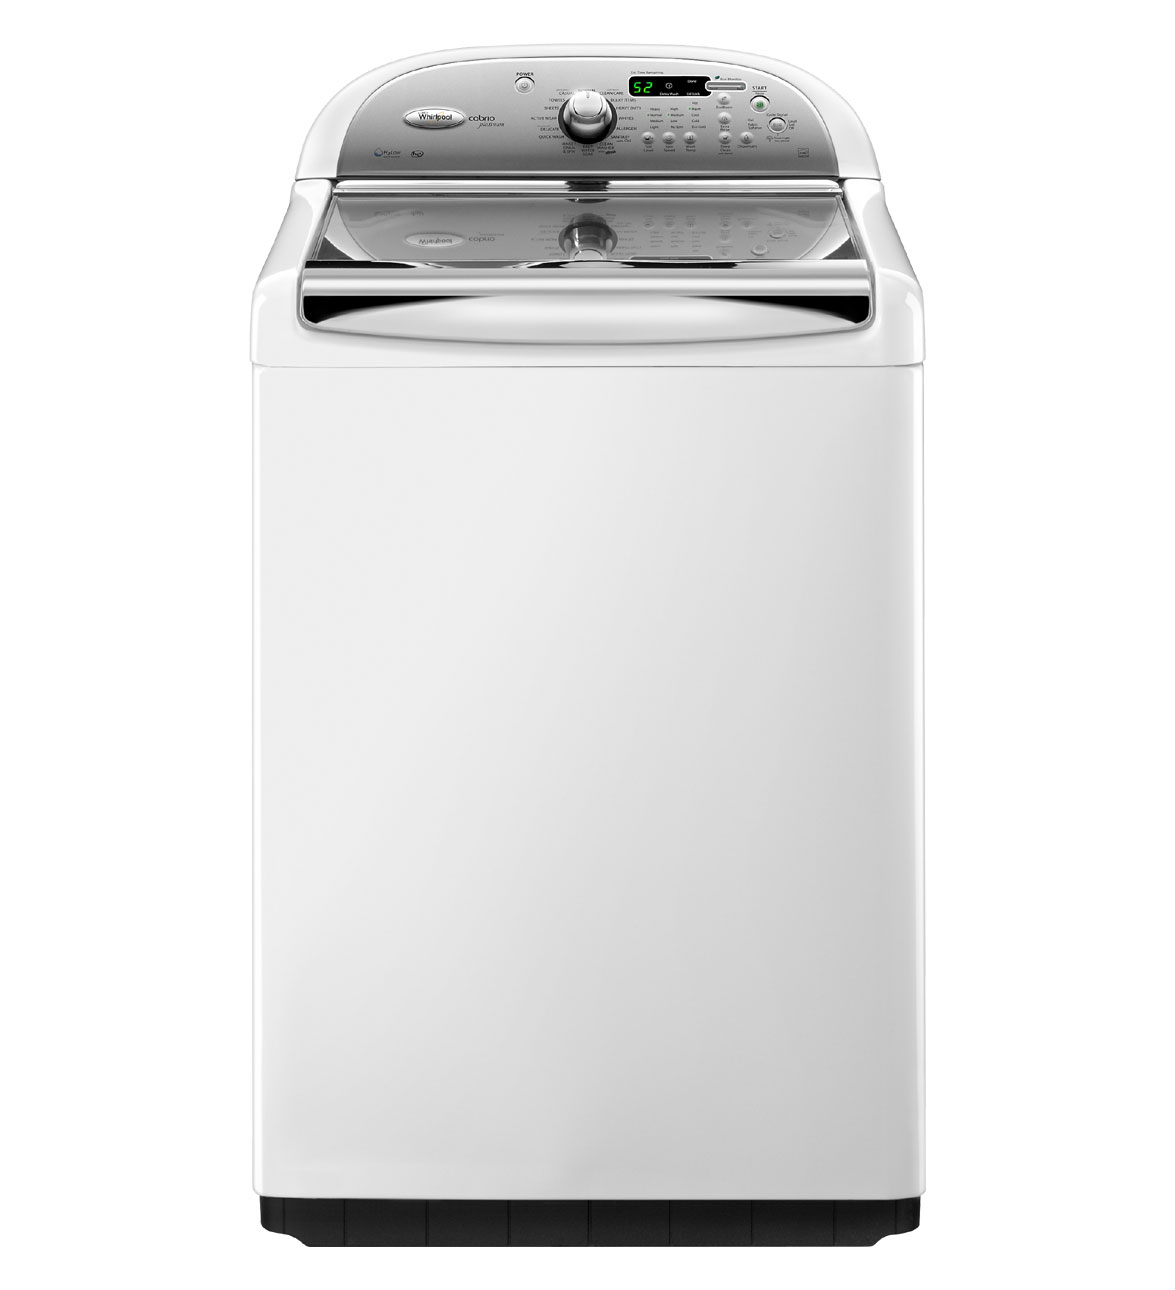 Review of Whirlpool Cabrio Platinum 4.6 cu ft High-Efficiency Top-Load Washer (White) ENERGY STAR (Model: WTW8800YW)